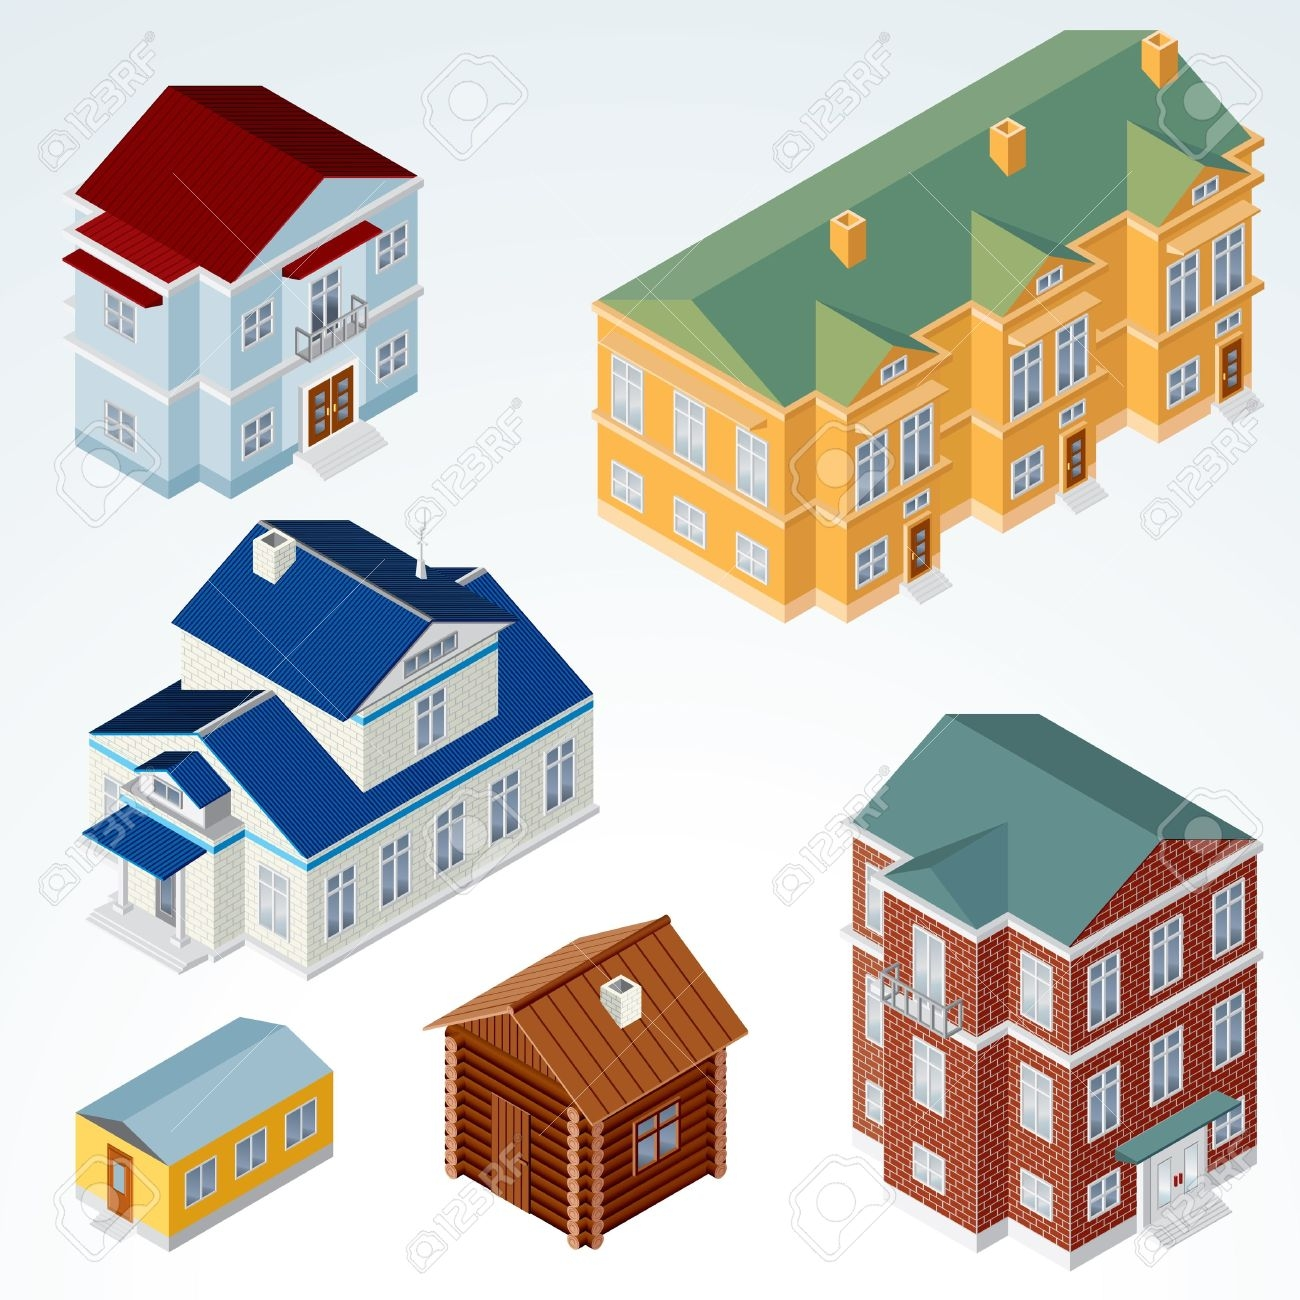 Office clipart small building Home Isometric Design Building Home